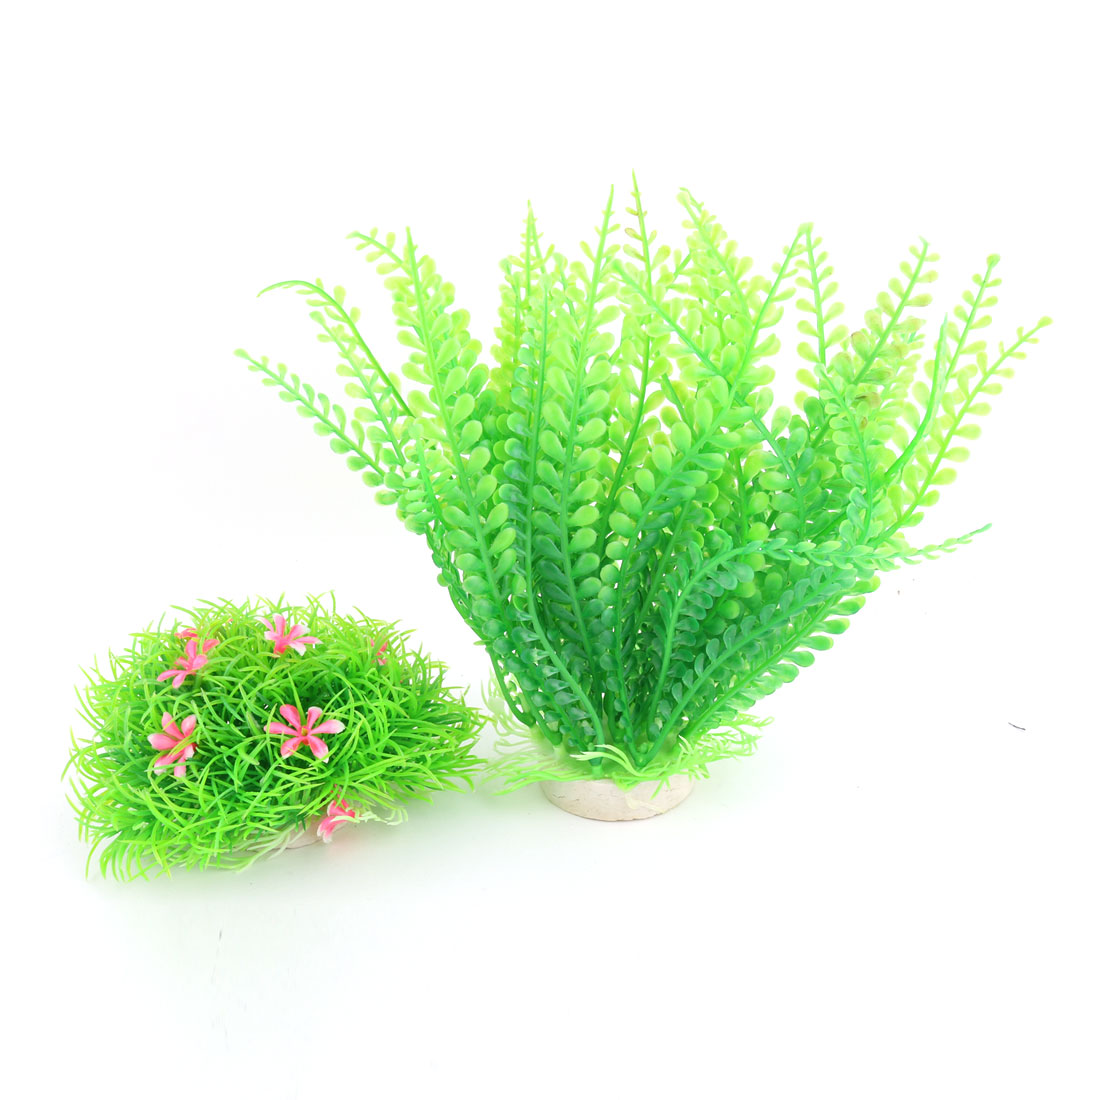 Aquarium Ceramic Base Plastic Plant Grass Decoration Green Pink 2 in 1